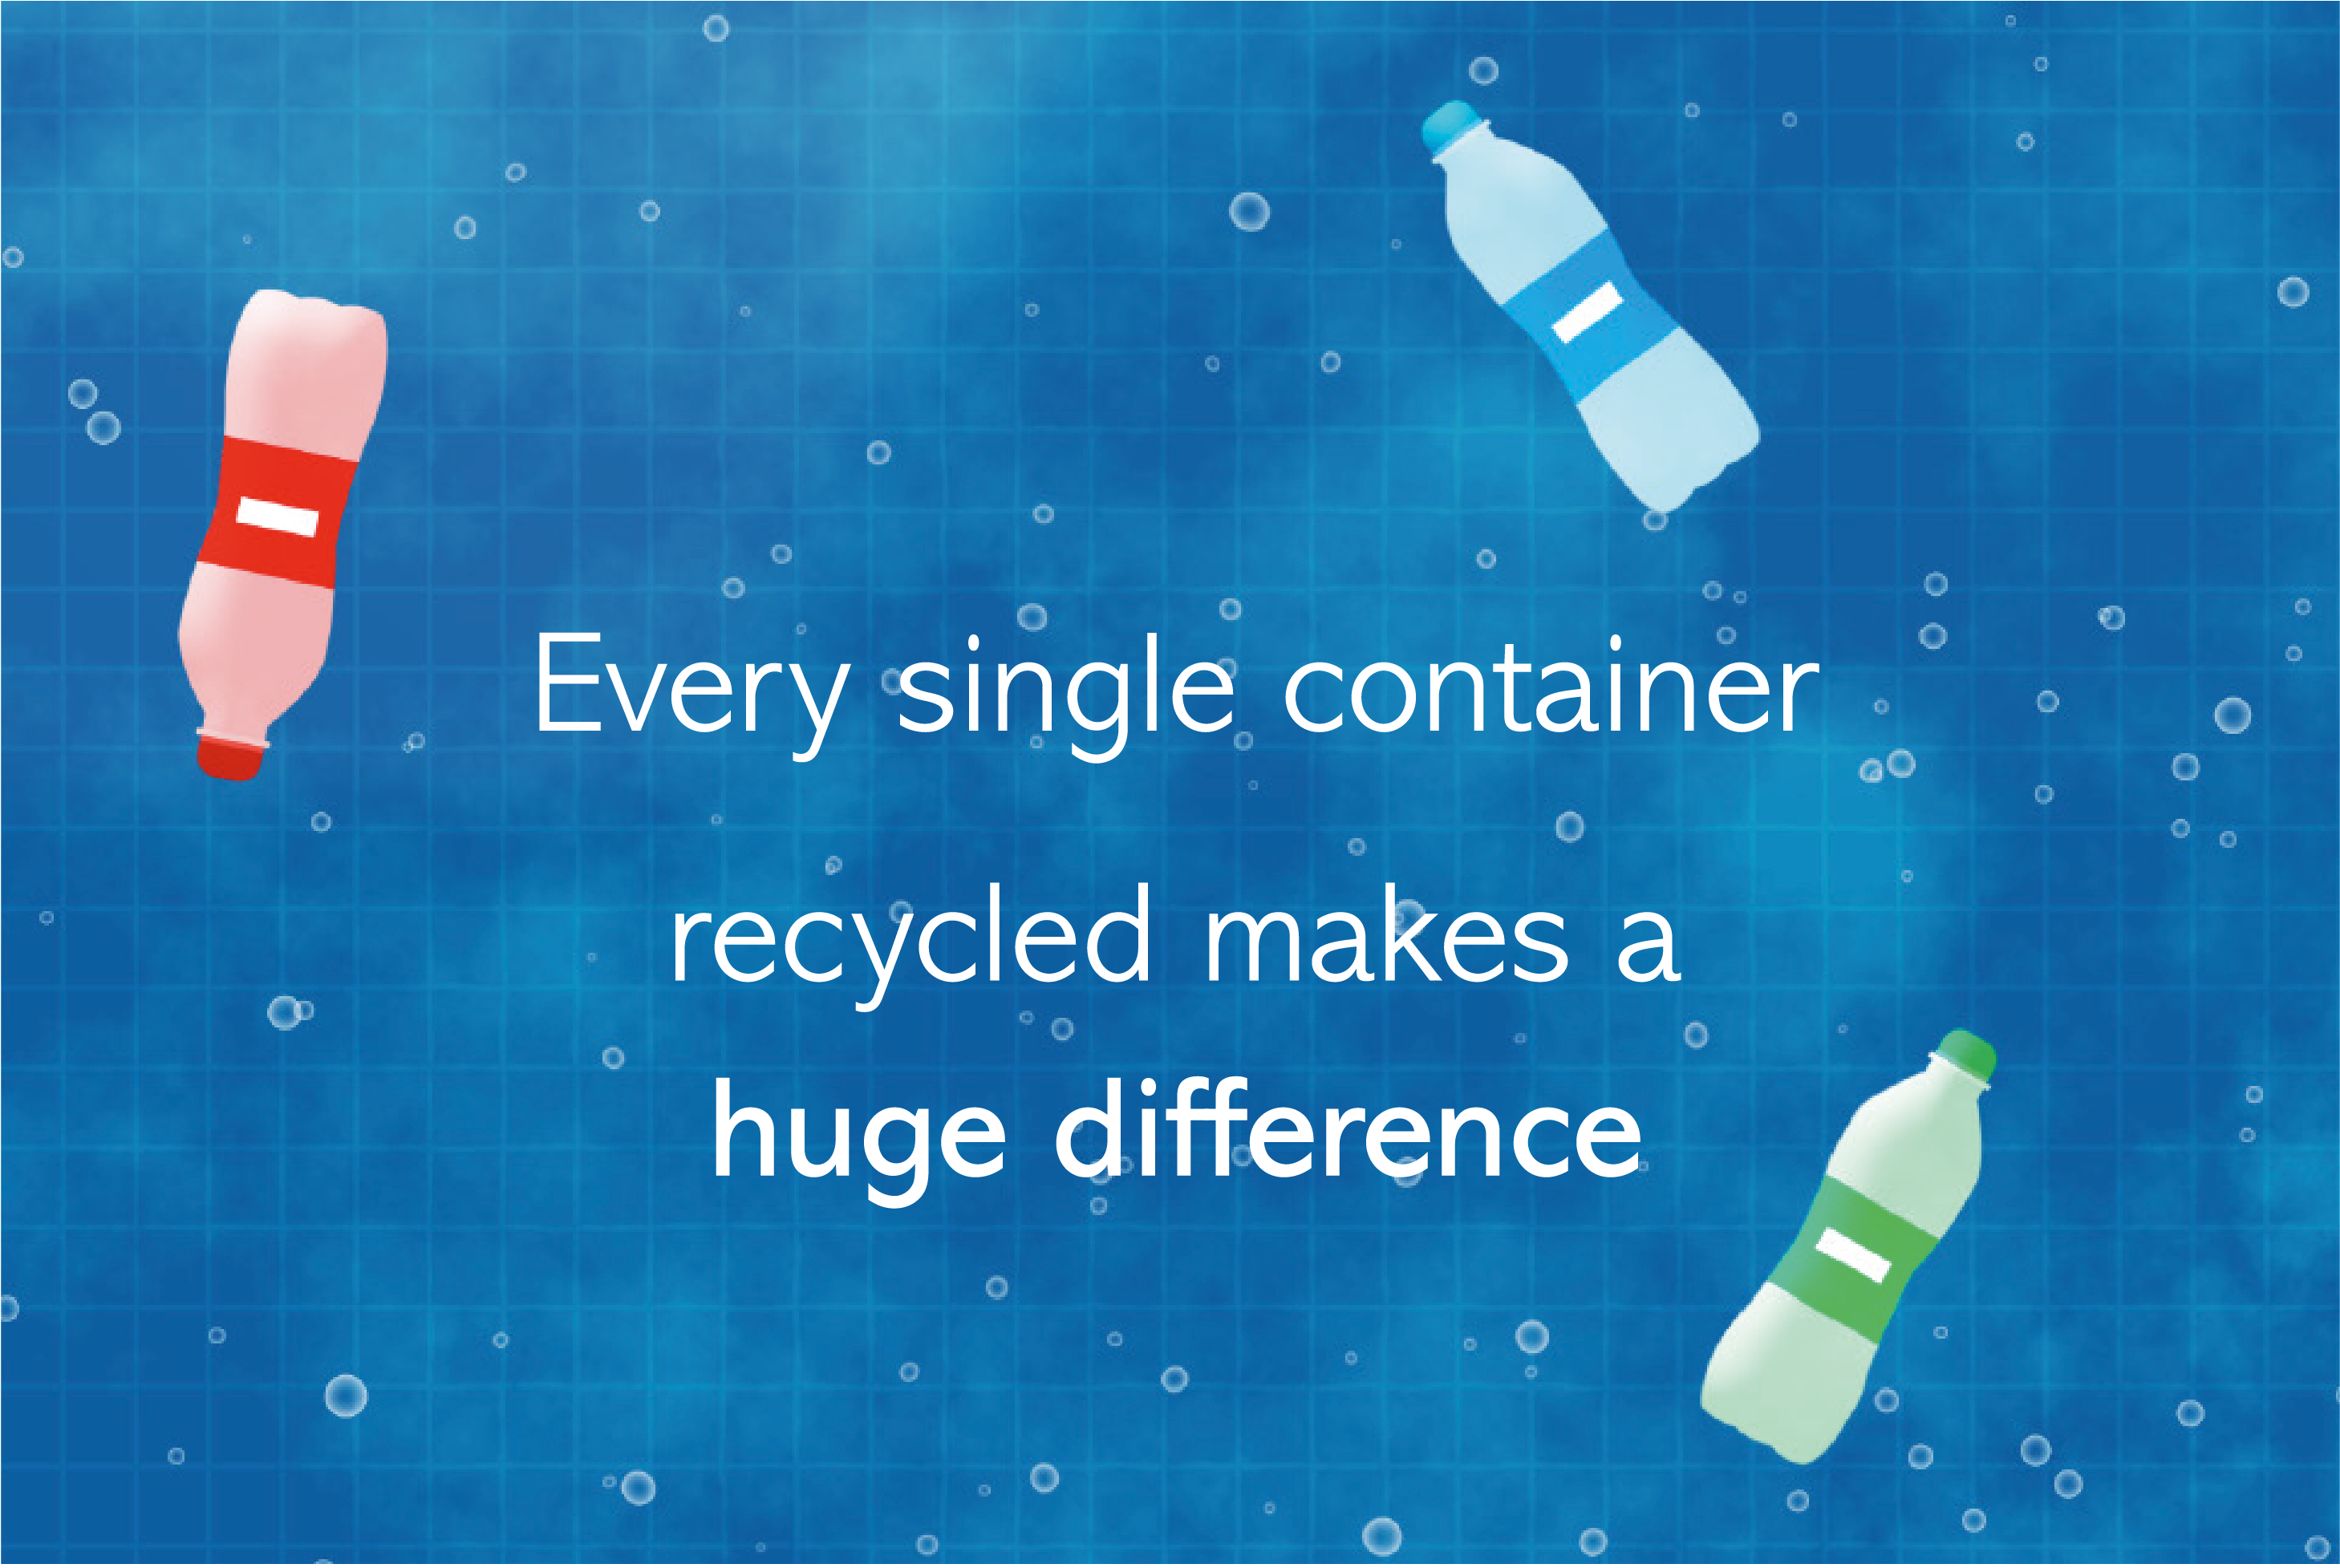 containers-make-difference